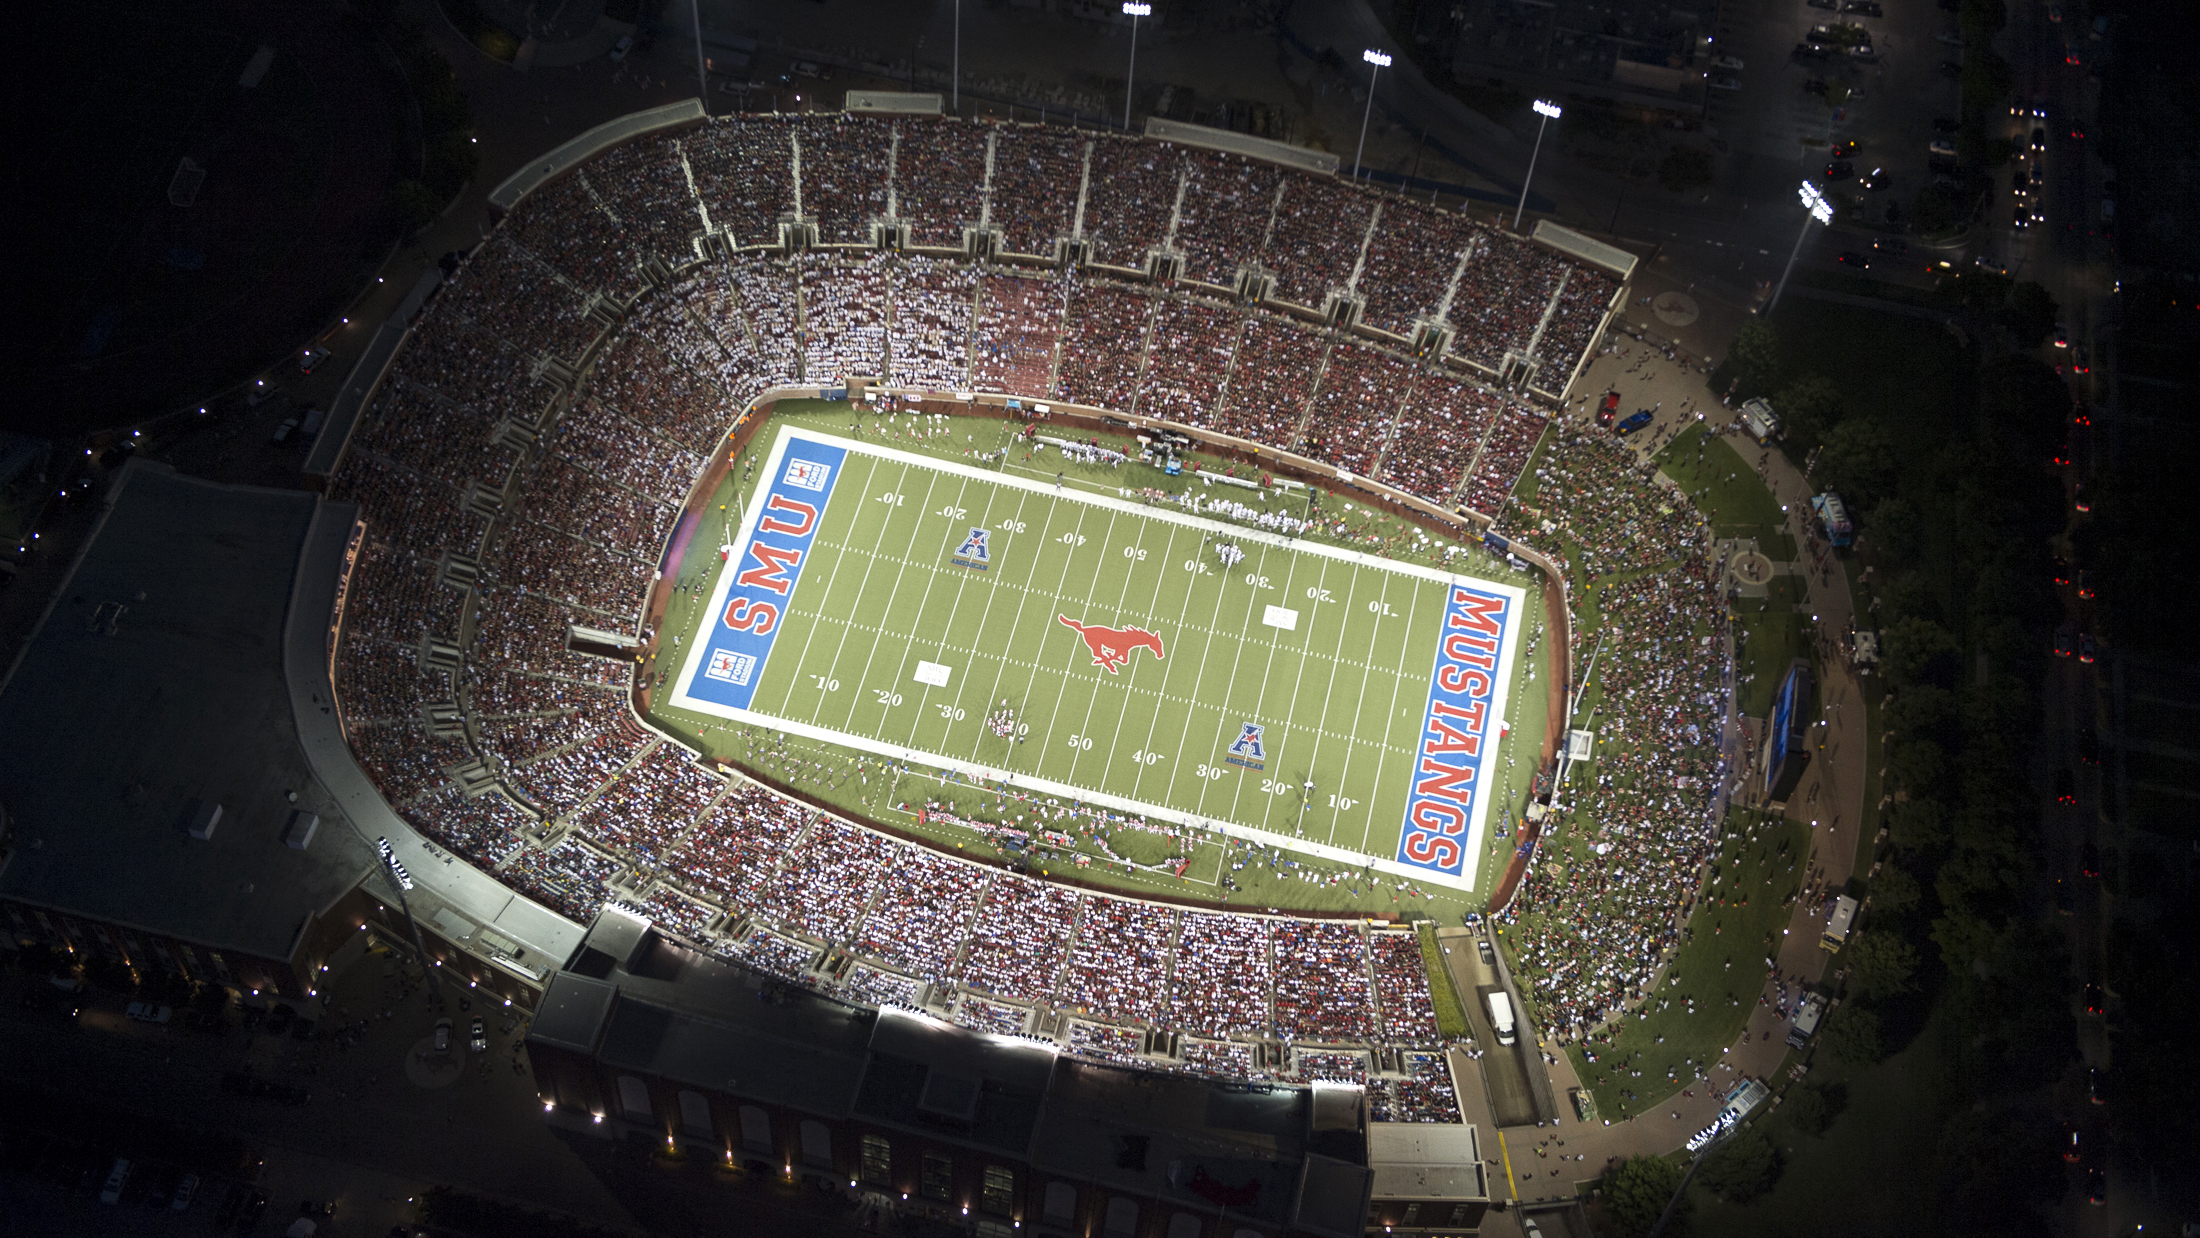 SMU's Ford Stadium at night